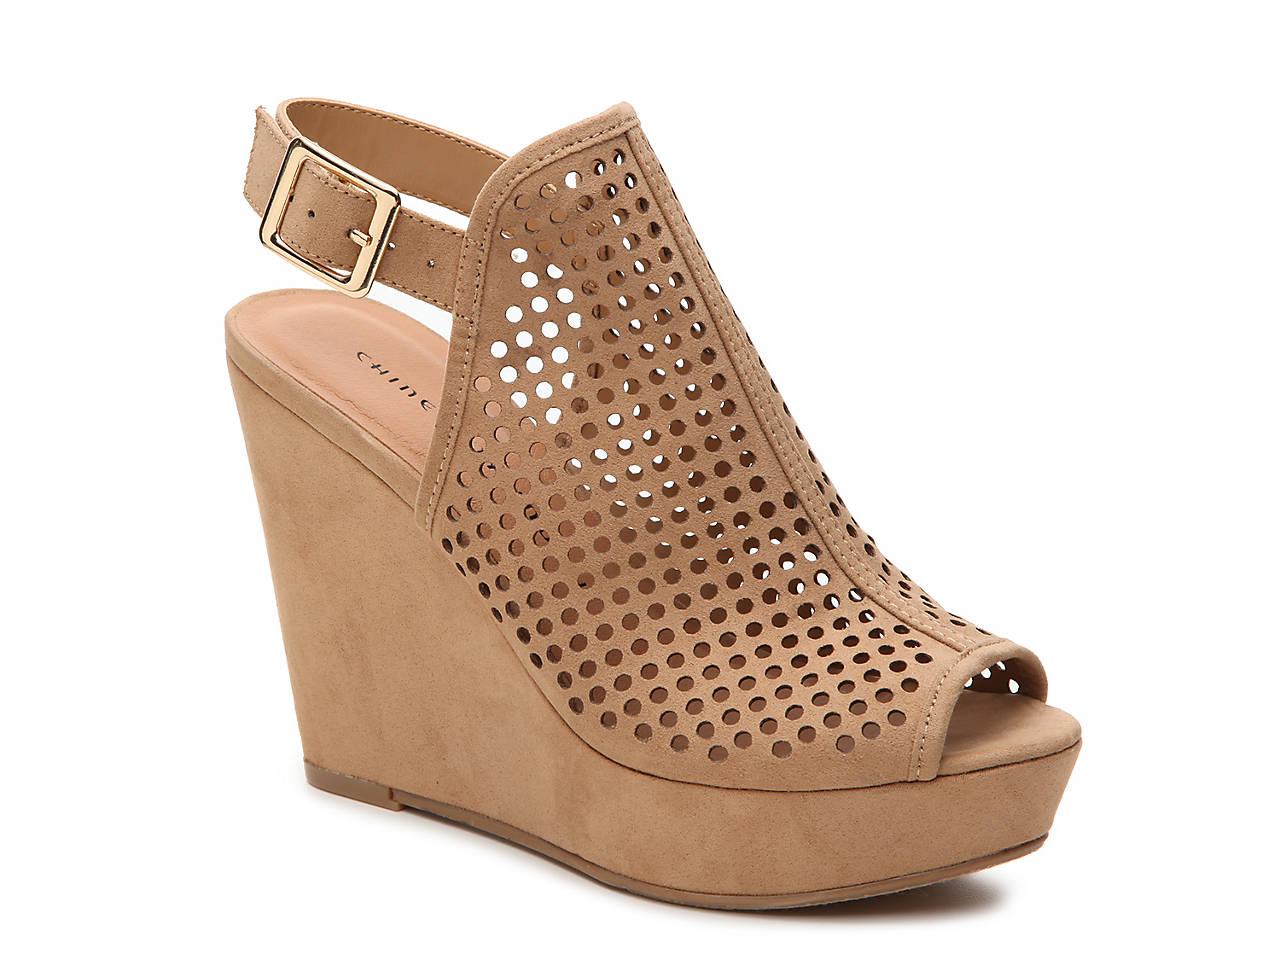 DSW Shoes Free Shipping Policy. If you are a Rewards Member, you get FREE shipping on a purchase of $35 or more. If you are a Premier Rewards Member, .